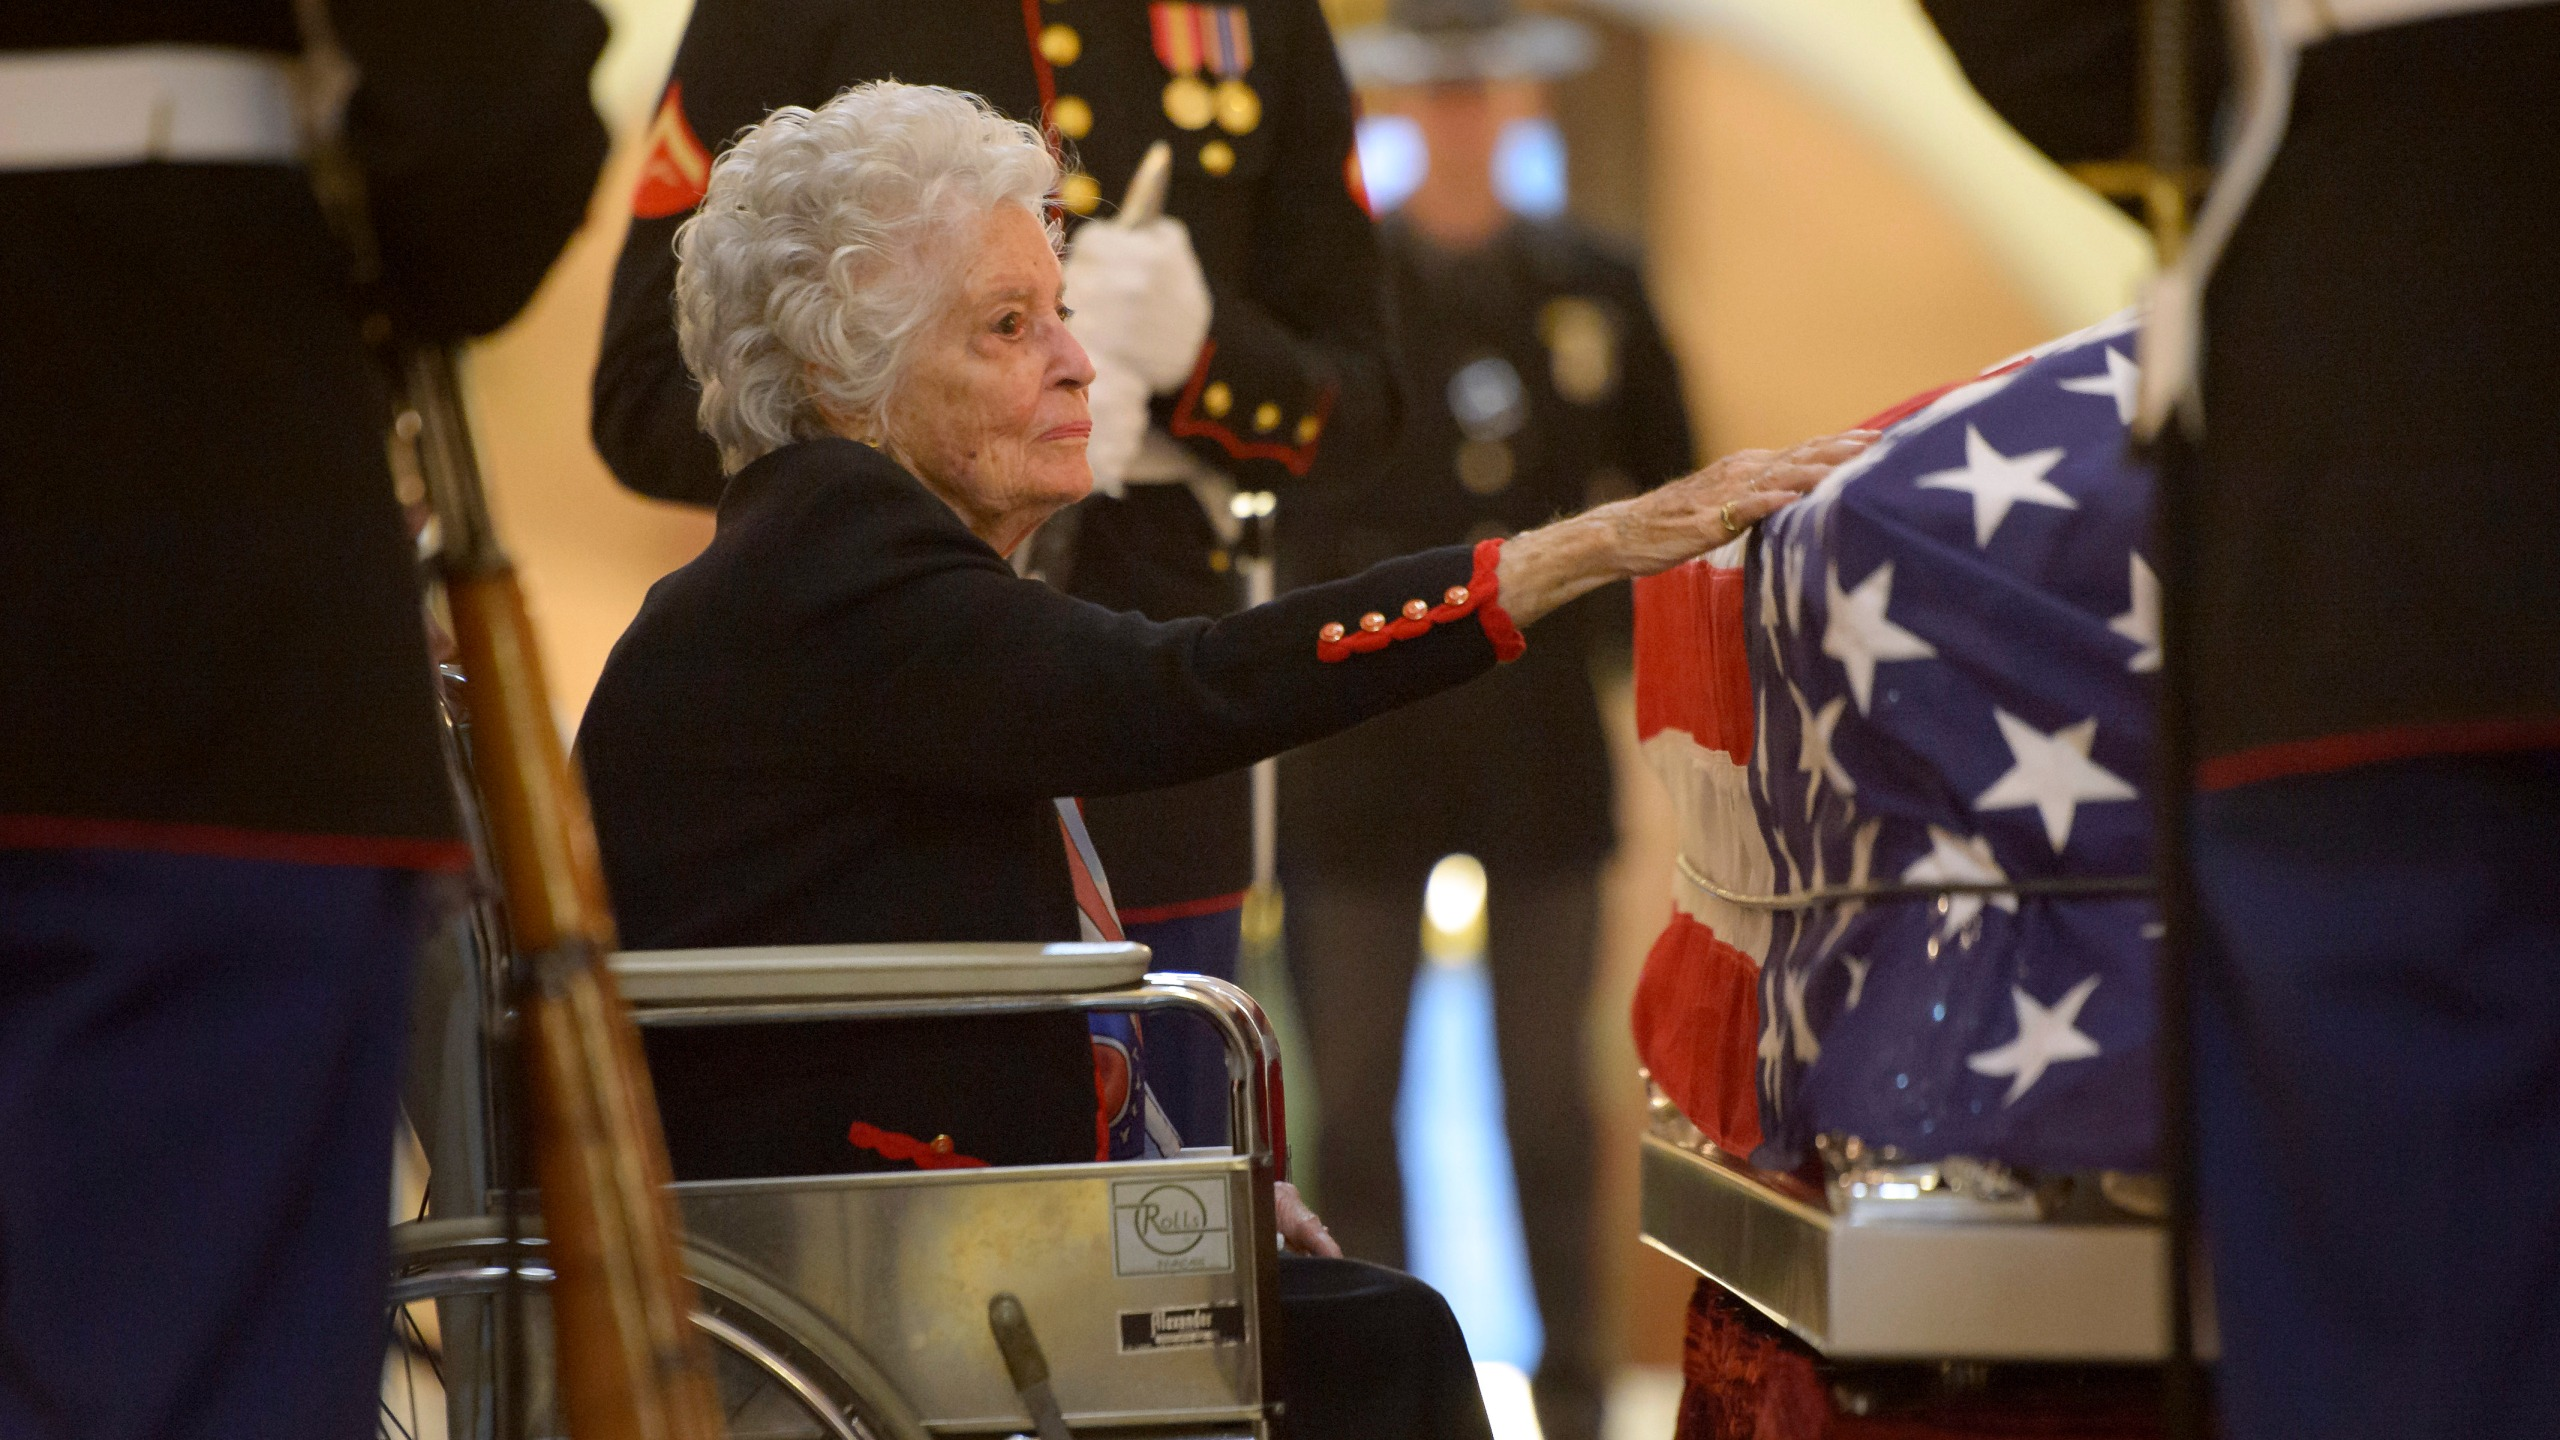 Annie Glenn, widow of former astronaut and Senator John Glenn, pays her respects to her late husband as he lies in repose, under a United States Marine honor guard, in the Rotunda of the Ohio Statehouse December 16, 2016 in Columbus, Ohio. (Bill Ingalls/NASA via Getty Images)